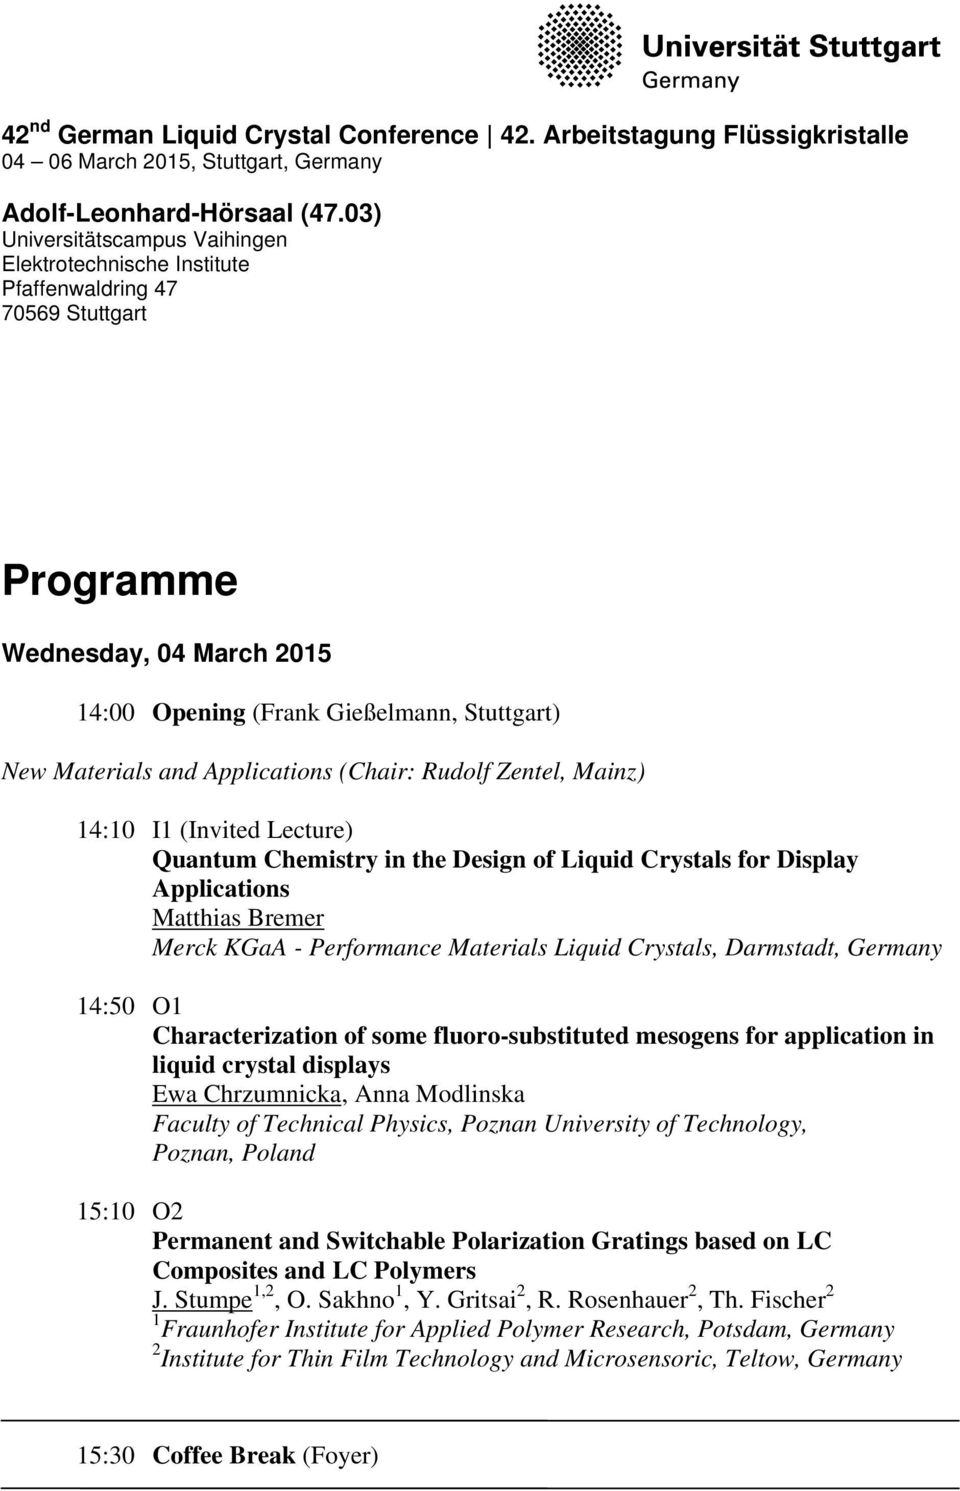 Applications (Chair: Rudolf Zentel, Mainz) 14:10 I1 (Invited Lecture) Quantum Chemistry in the Design of Liquid Crystals for Display Applications Matthias Bremer Merck KGaA - Performance Materials